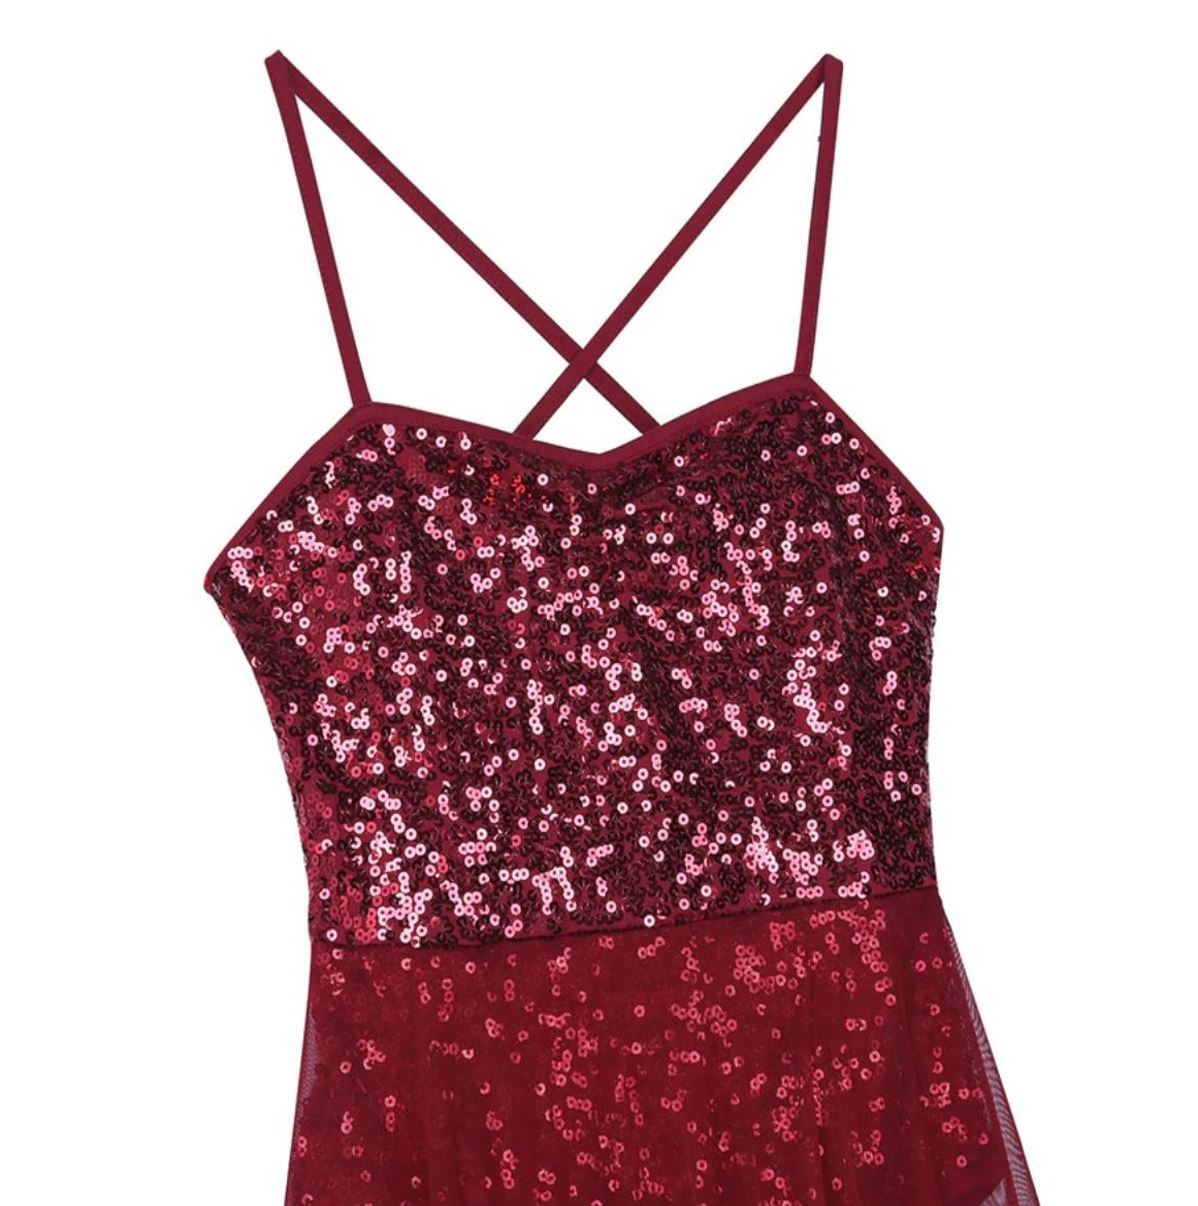 Red in colour, full body sequins leotard with mesh maxi skirt attached. Pas de bourree dancewear. Pasdebourreedancewear.